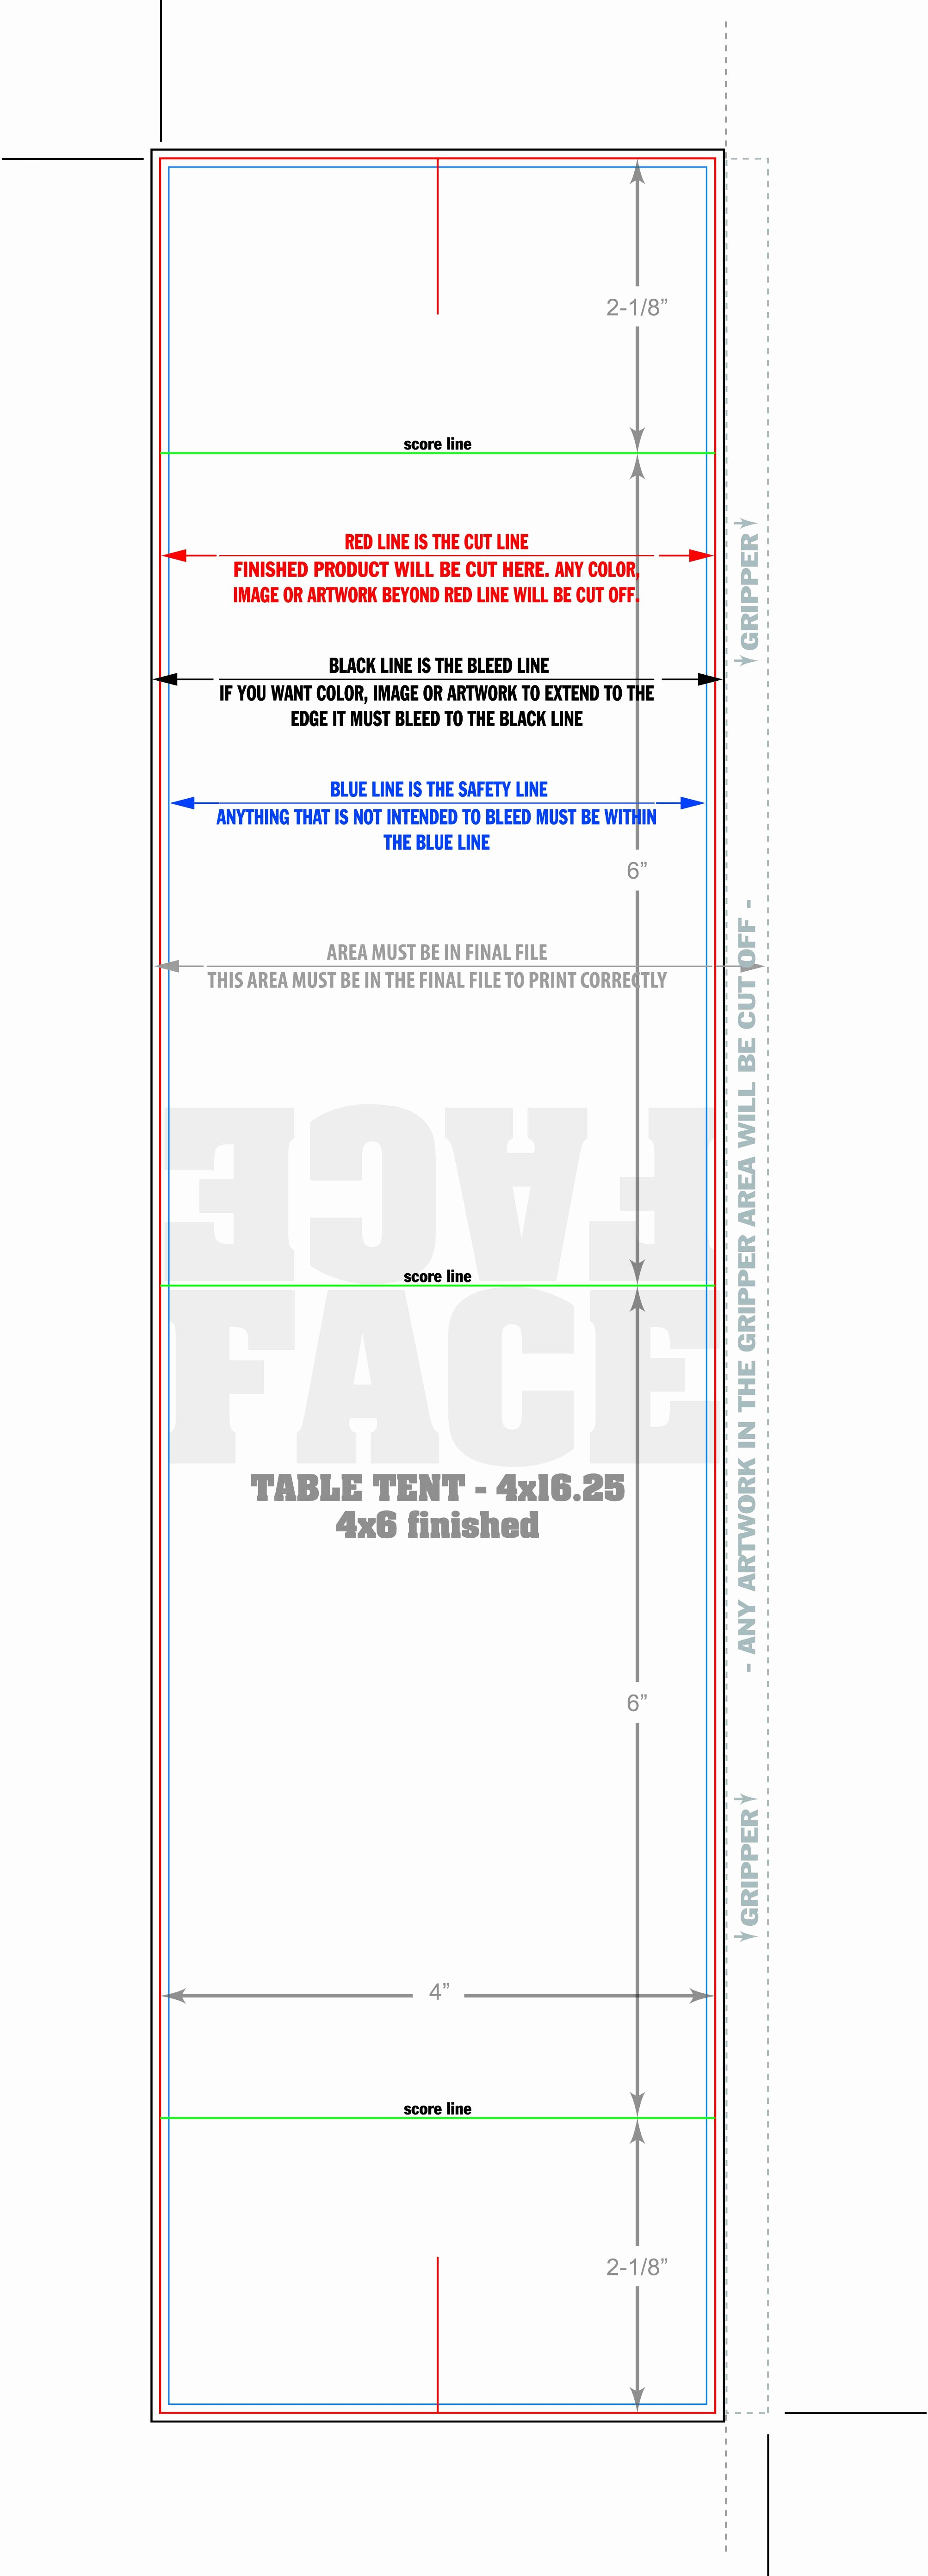 Free Table Tent Template Luxury Table Tent Cards Templates